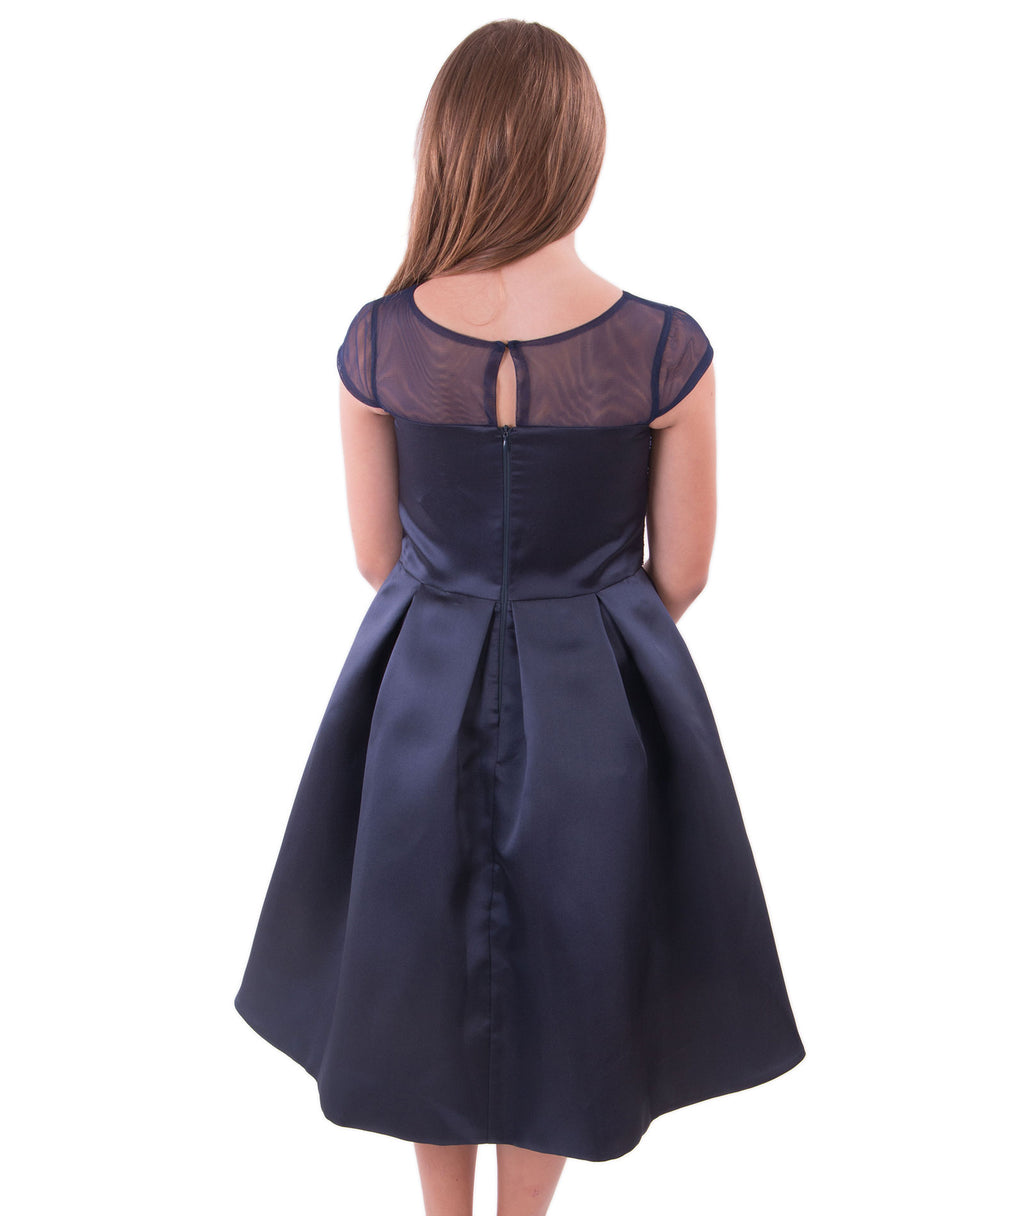 Zoe Ltd. Girls Navy Sequin Dress - Frankie's on the Park